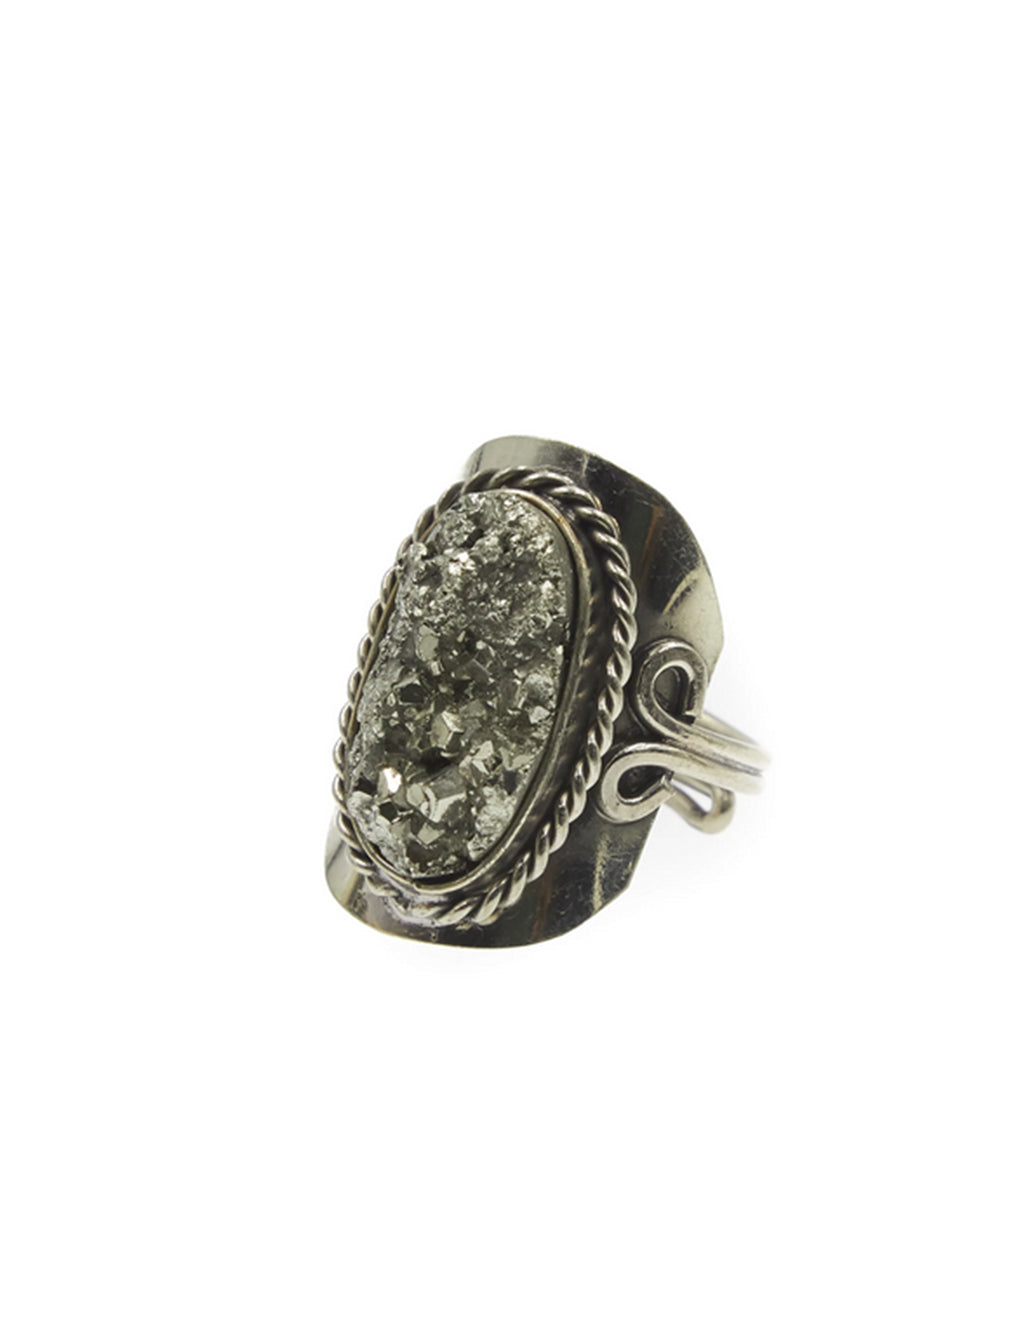 Natalie B Copa Plain Peruvian Ring in Pyrite